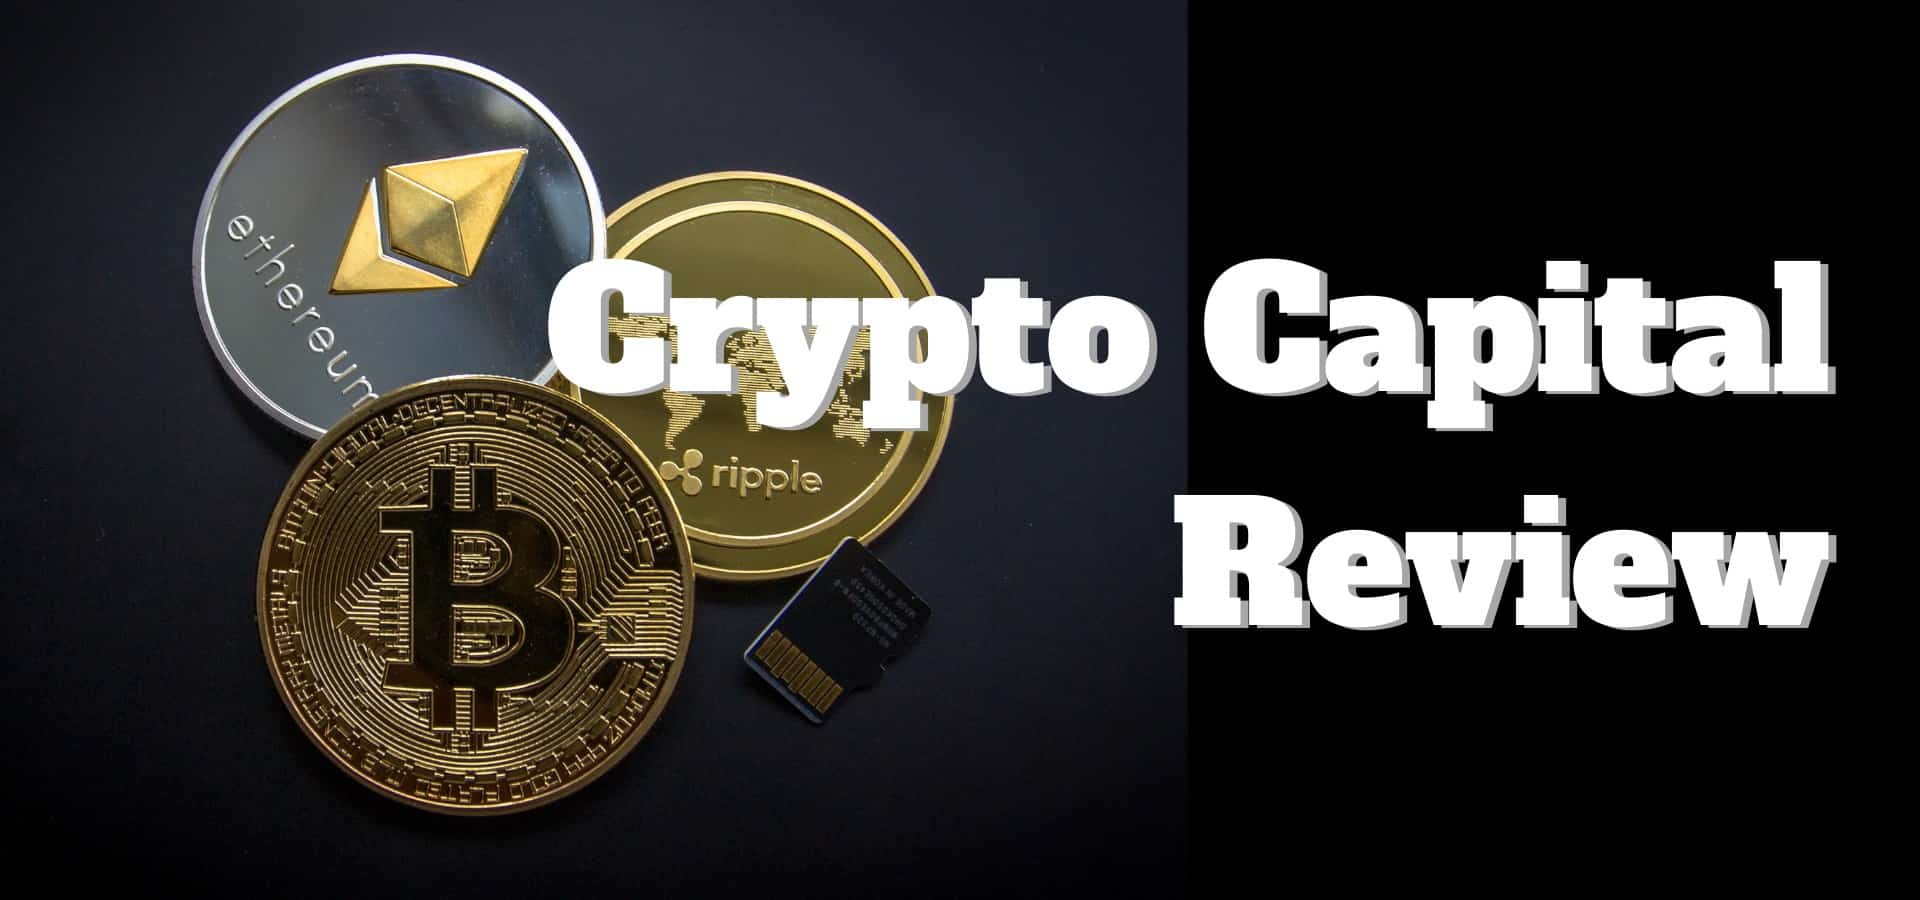 Crypto Capital Review: Is It A Complete Scam?